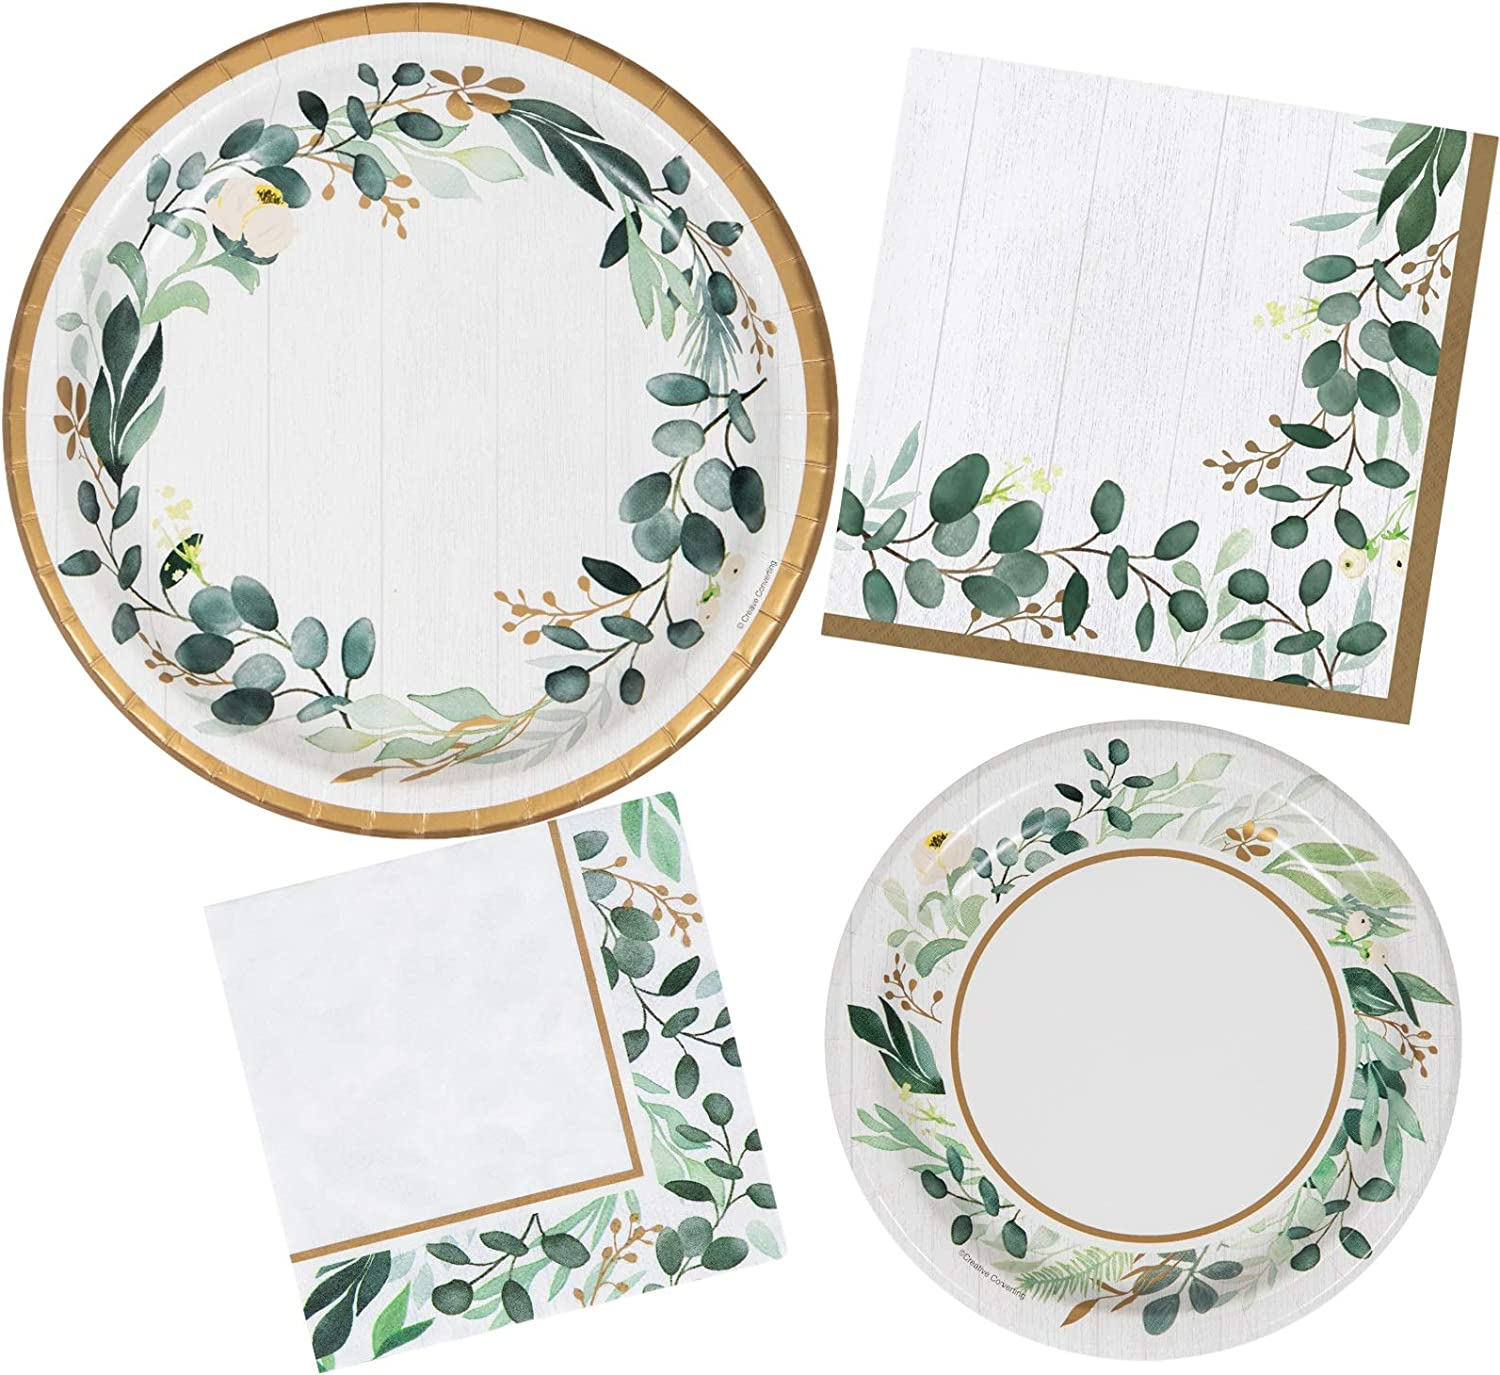 Eucalyptus Greens Party Dinnerware Bundle | Paper Plates and Napkins for 8 People | Rustic Wedding Decorations, Garden Theme Tea Party Supplies, Bridal Shower or Birthday Party Décor